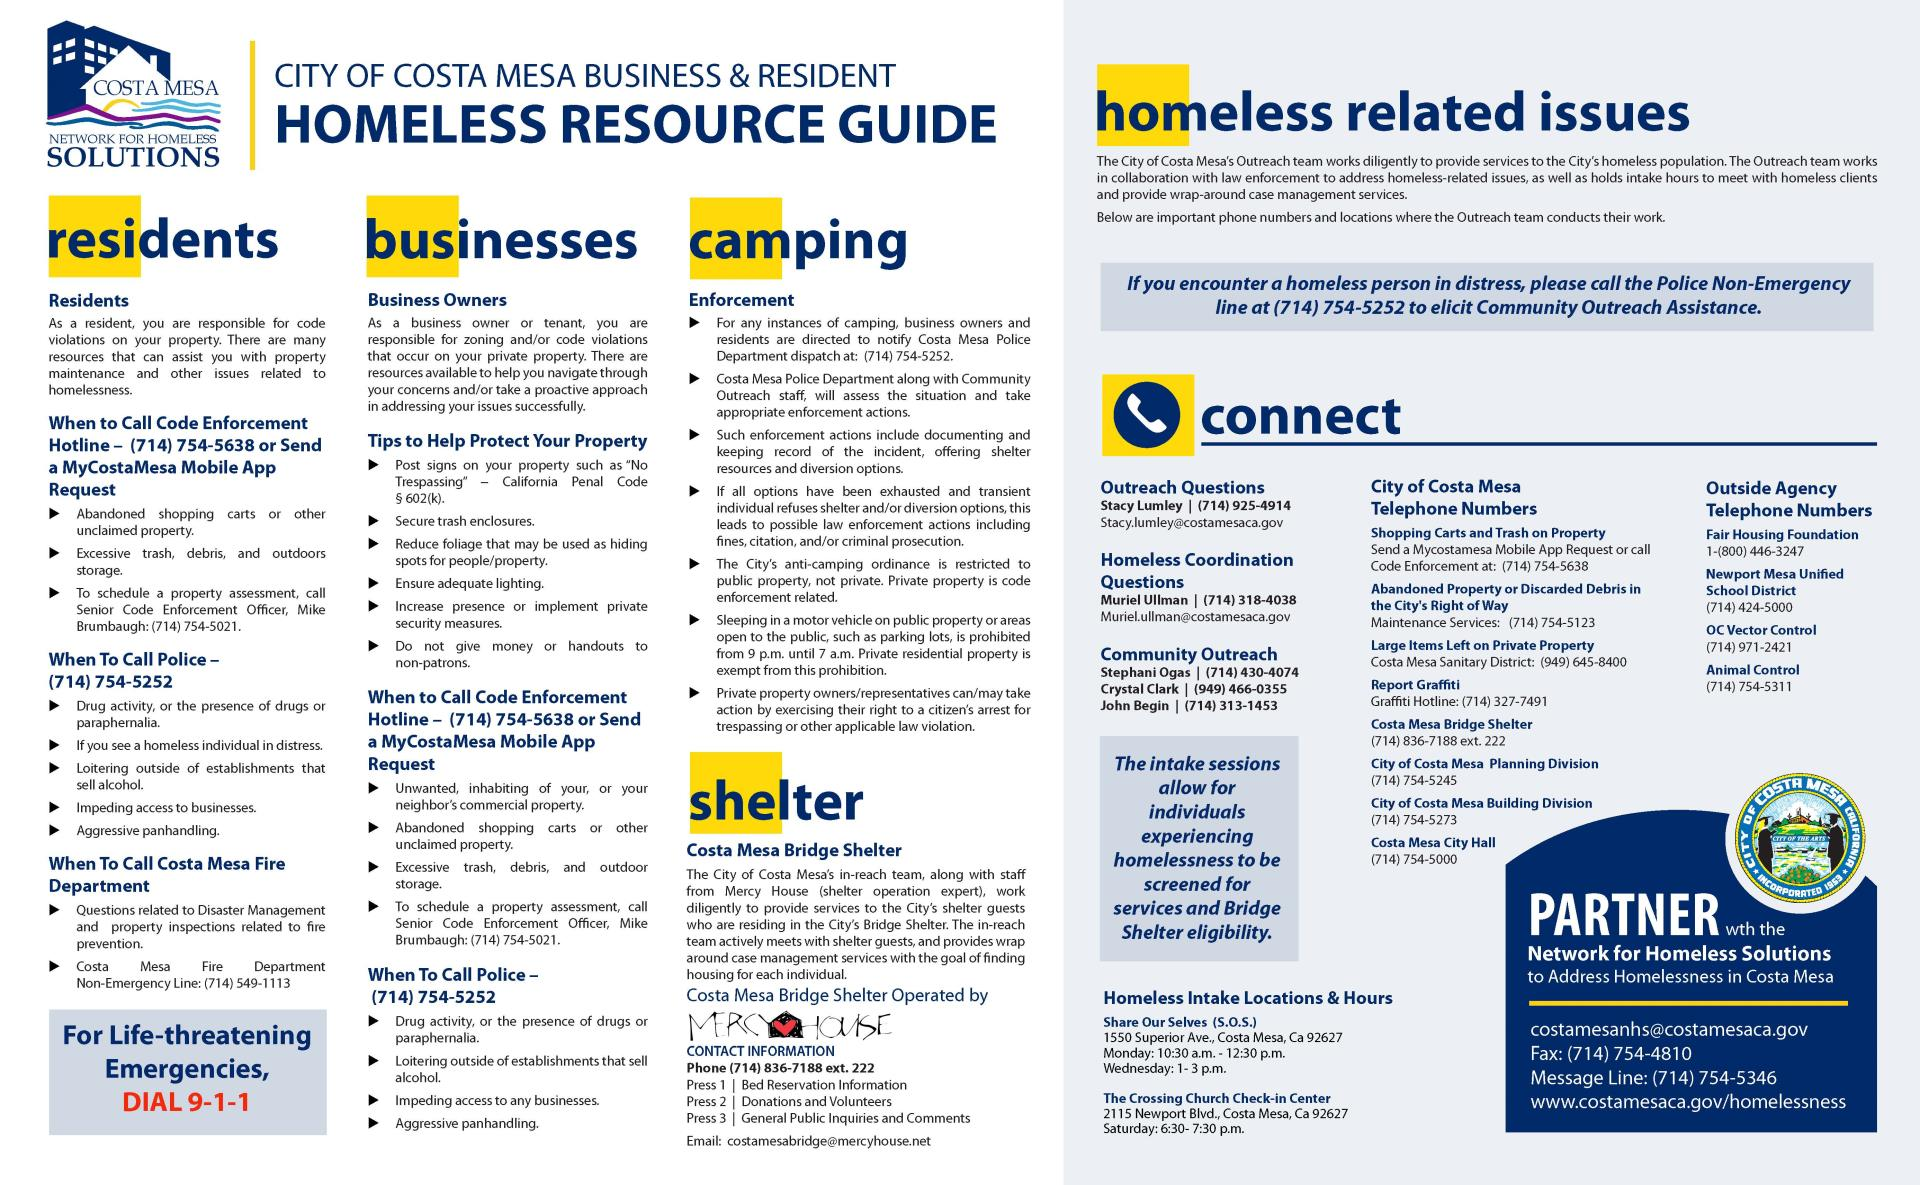 Bridge Shelter Resource Guide - REV-9-16-2019